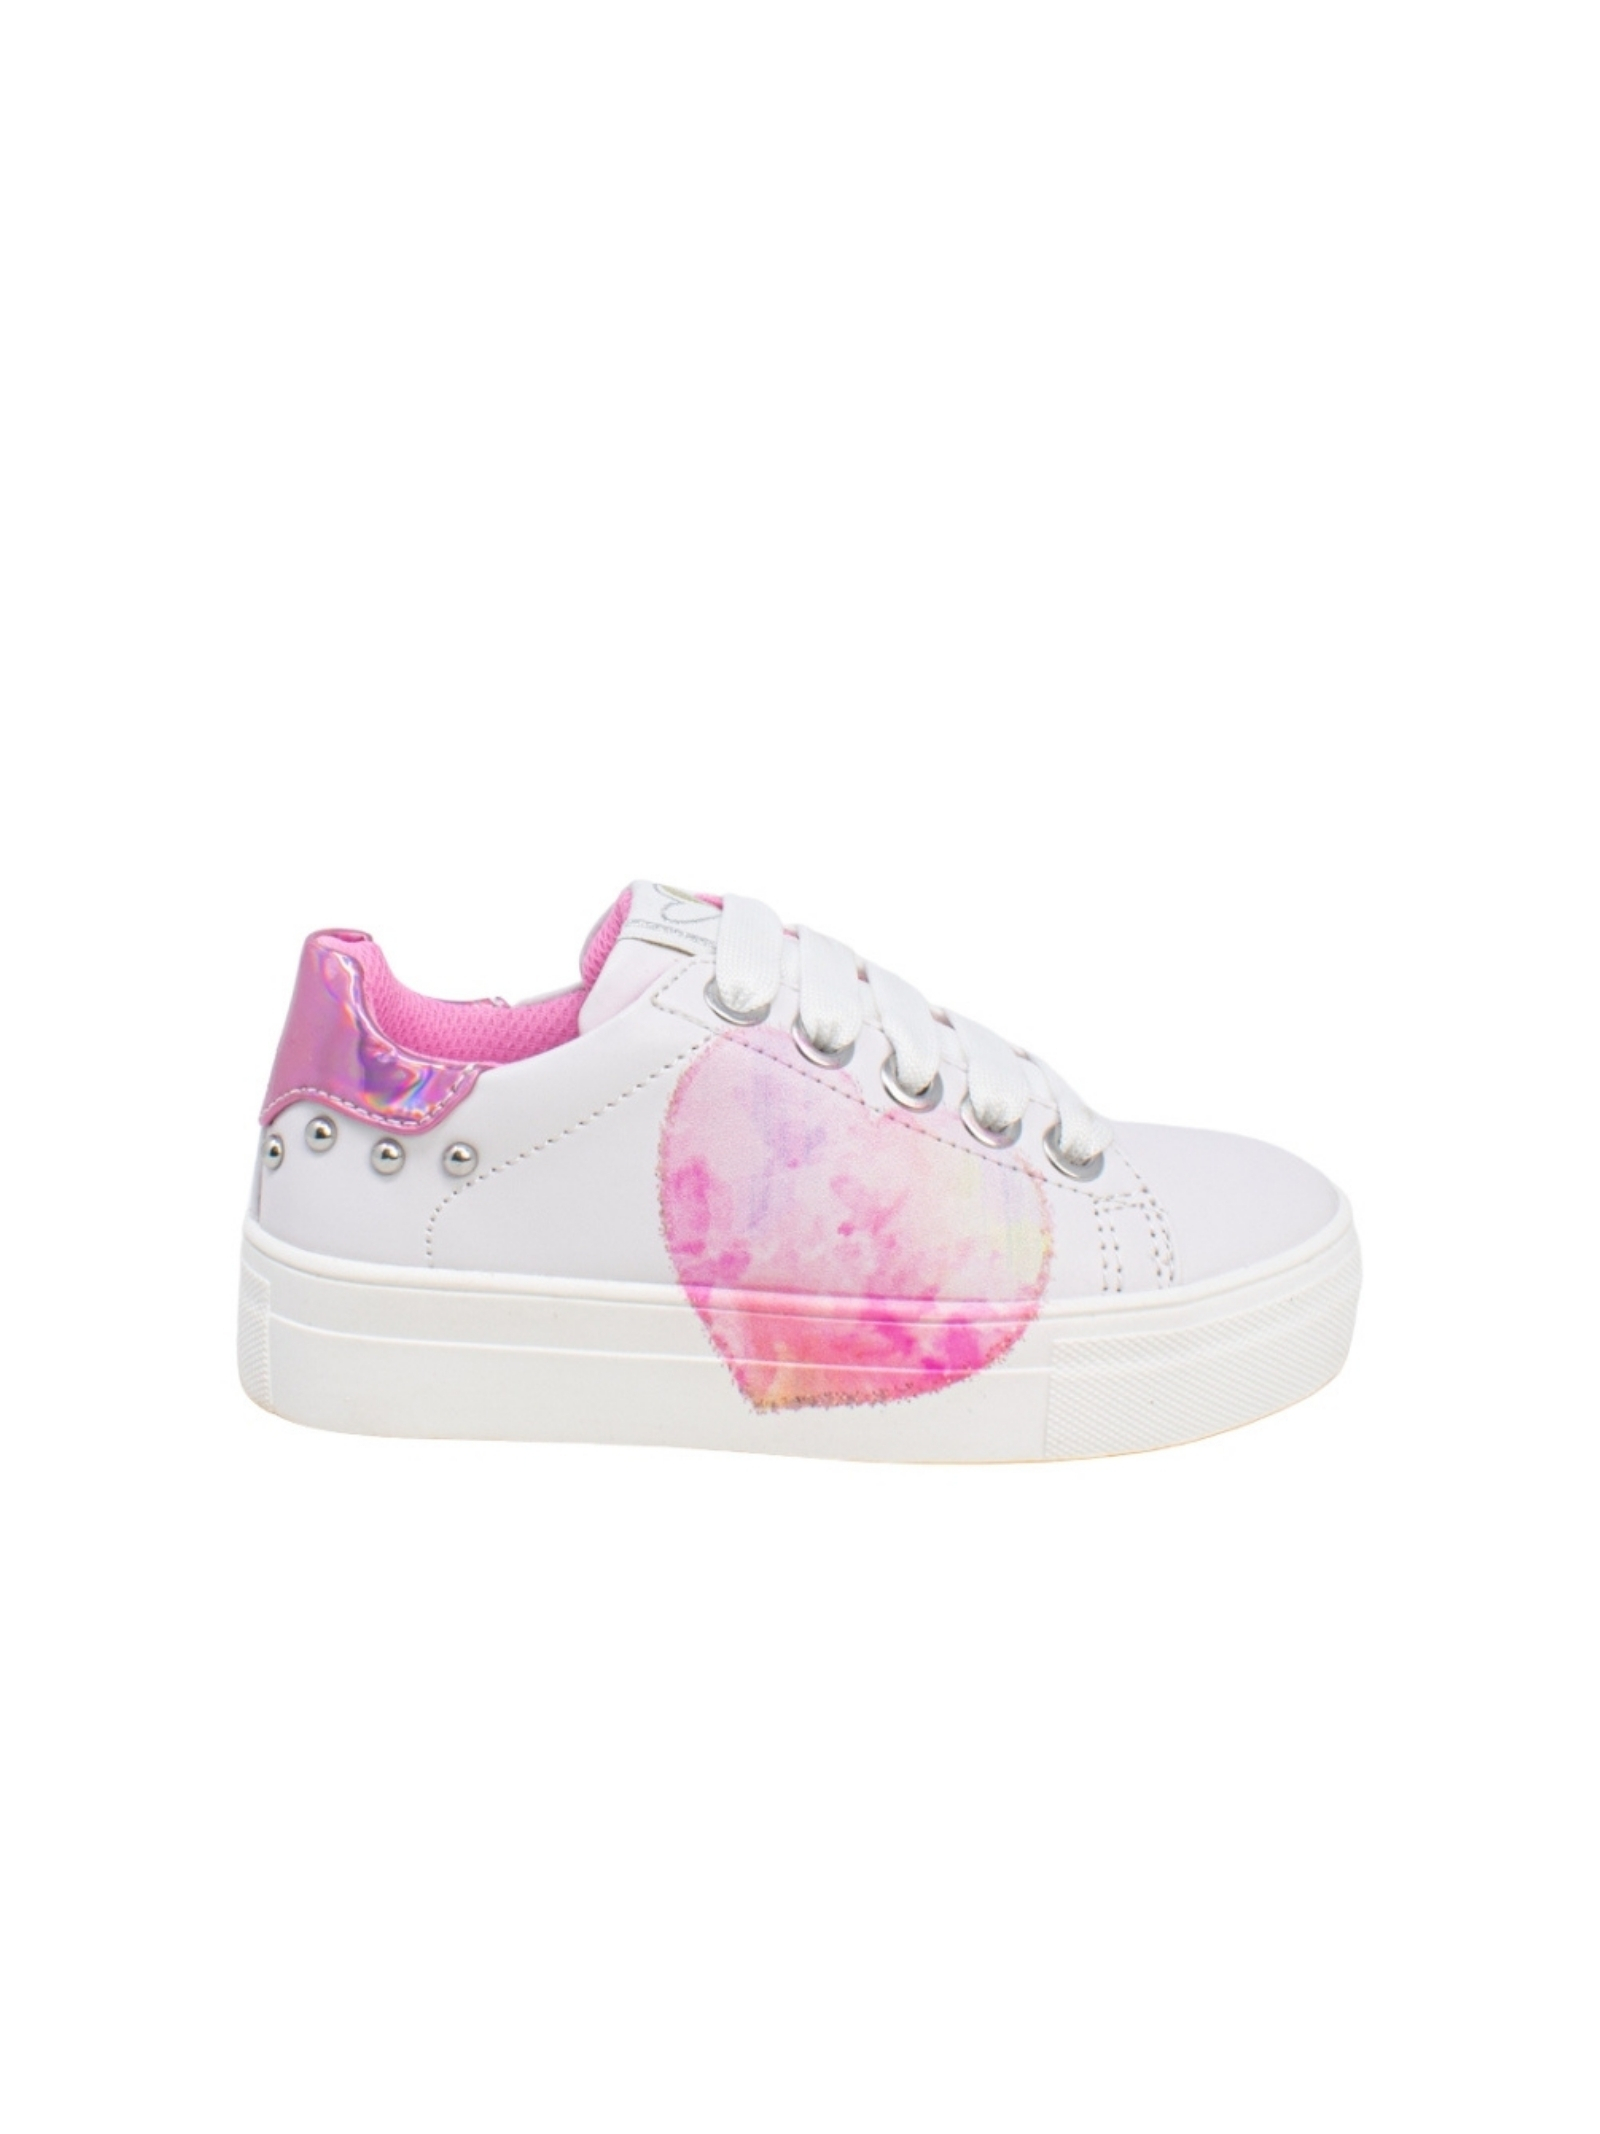 Sneakers Love Borchie ASSO | Sneakers | 10354BIANCO